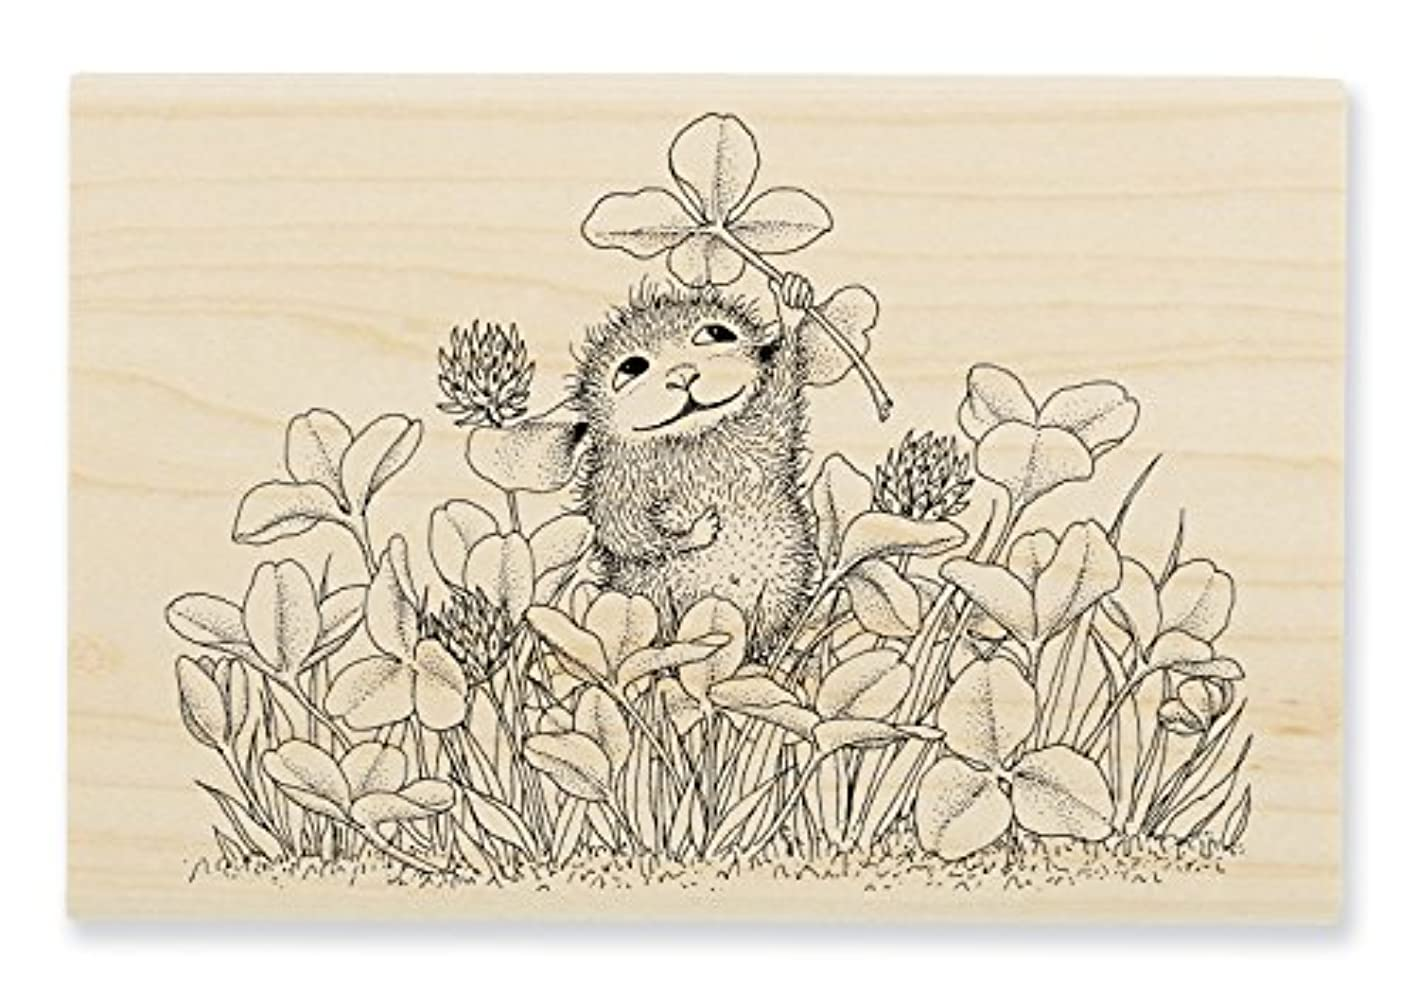 STAMPENDOUS House Mouse Wood Rubber Stamp Lucky Clover esyymblmkpp759